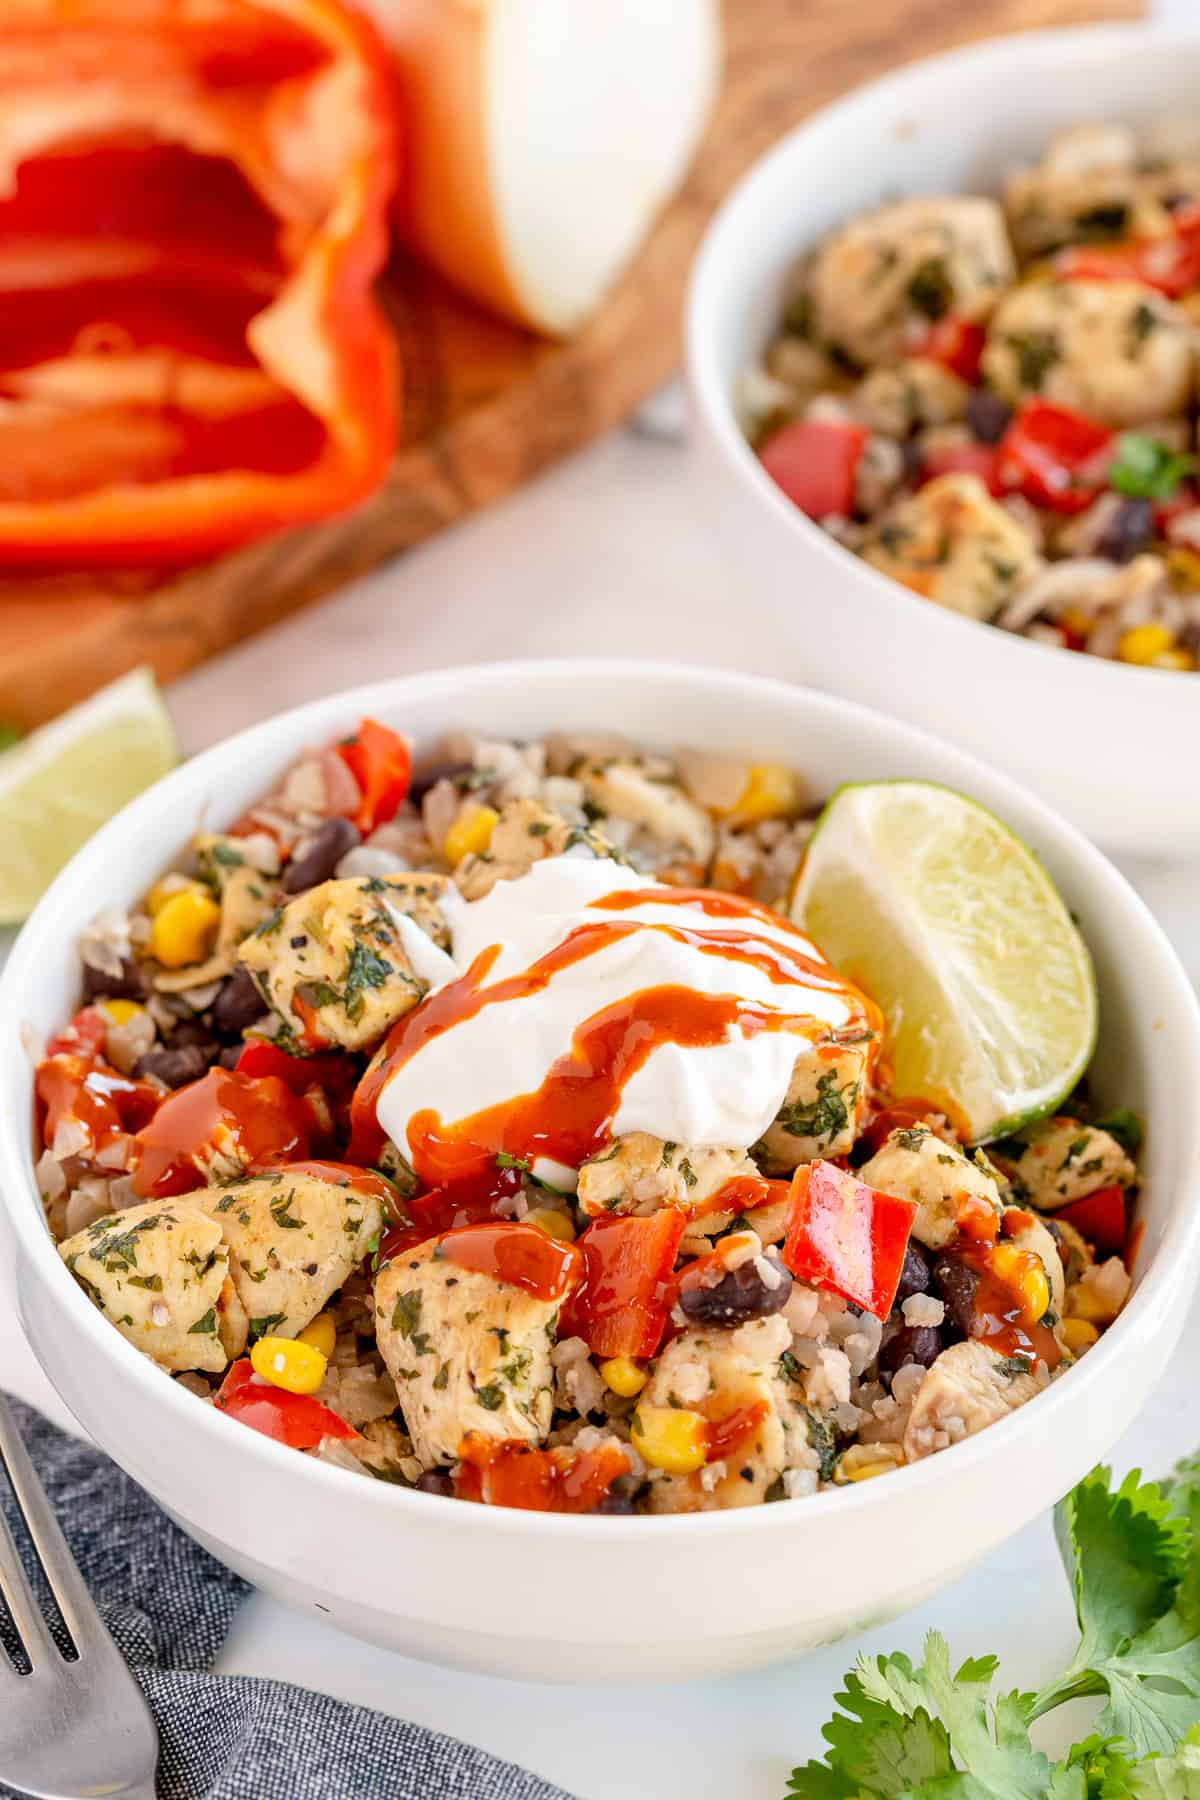 A Cilantro Lime Chicken Bowl topped with sour cream and hot sauce.